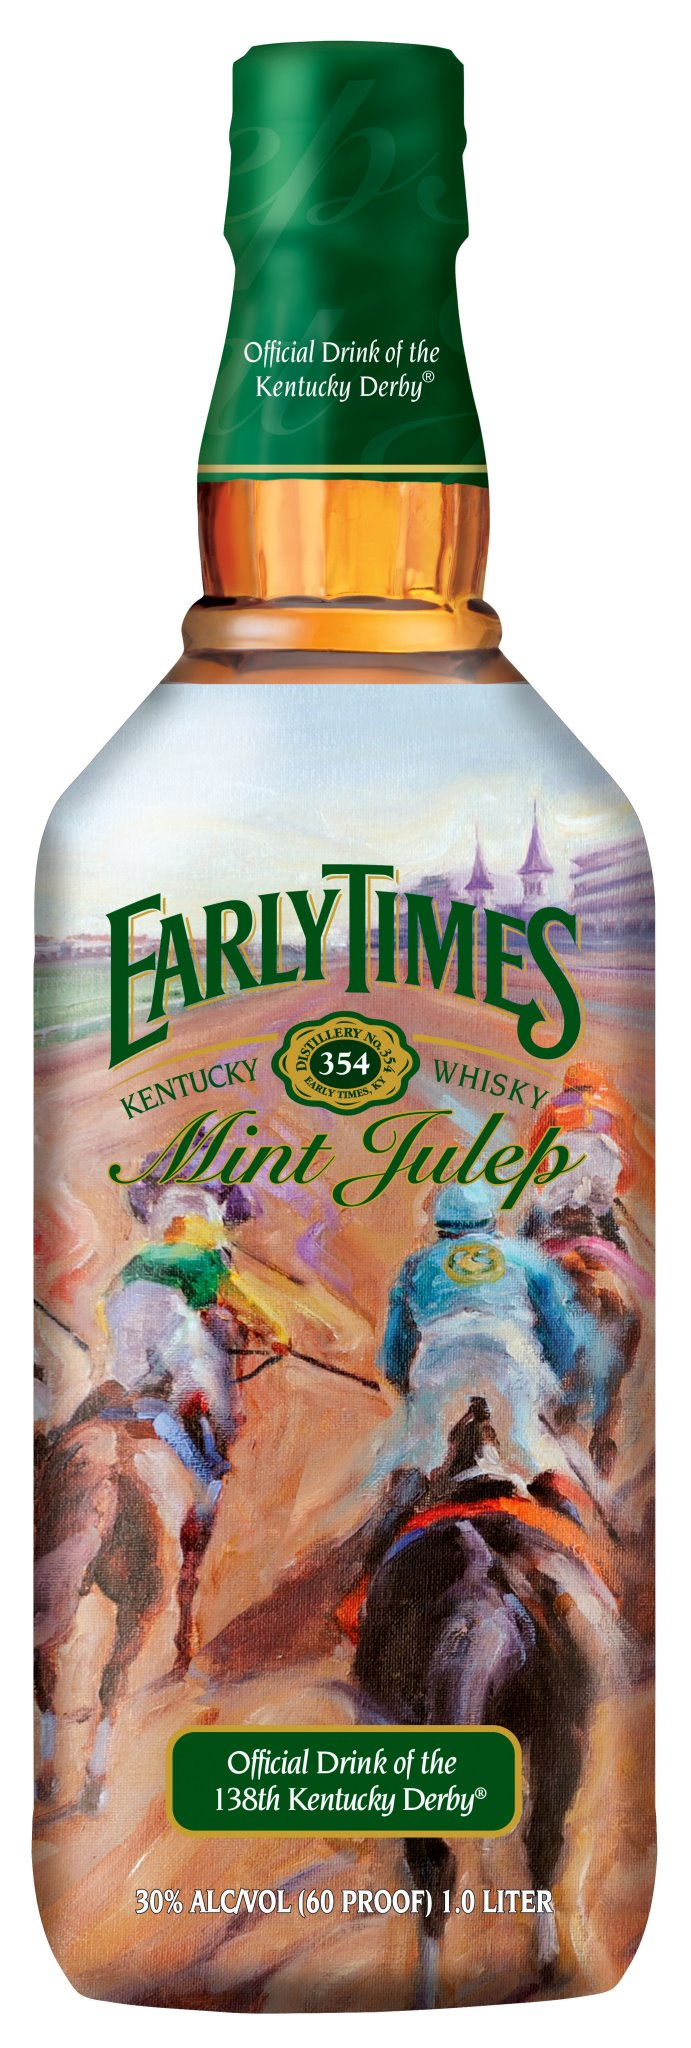 Early Times Mint Julep BOttle 2012 Kentucky Derby 138